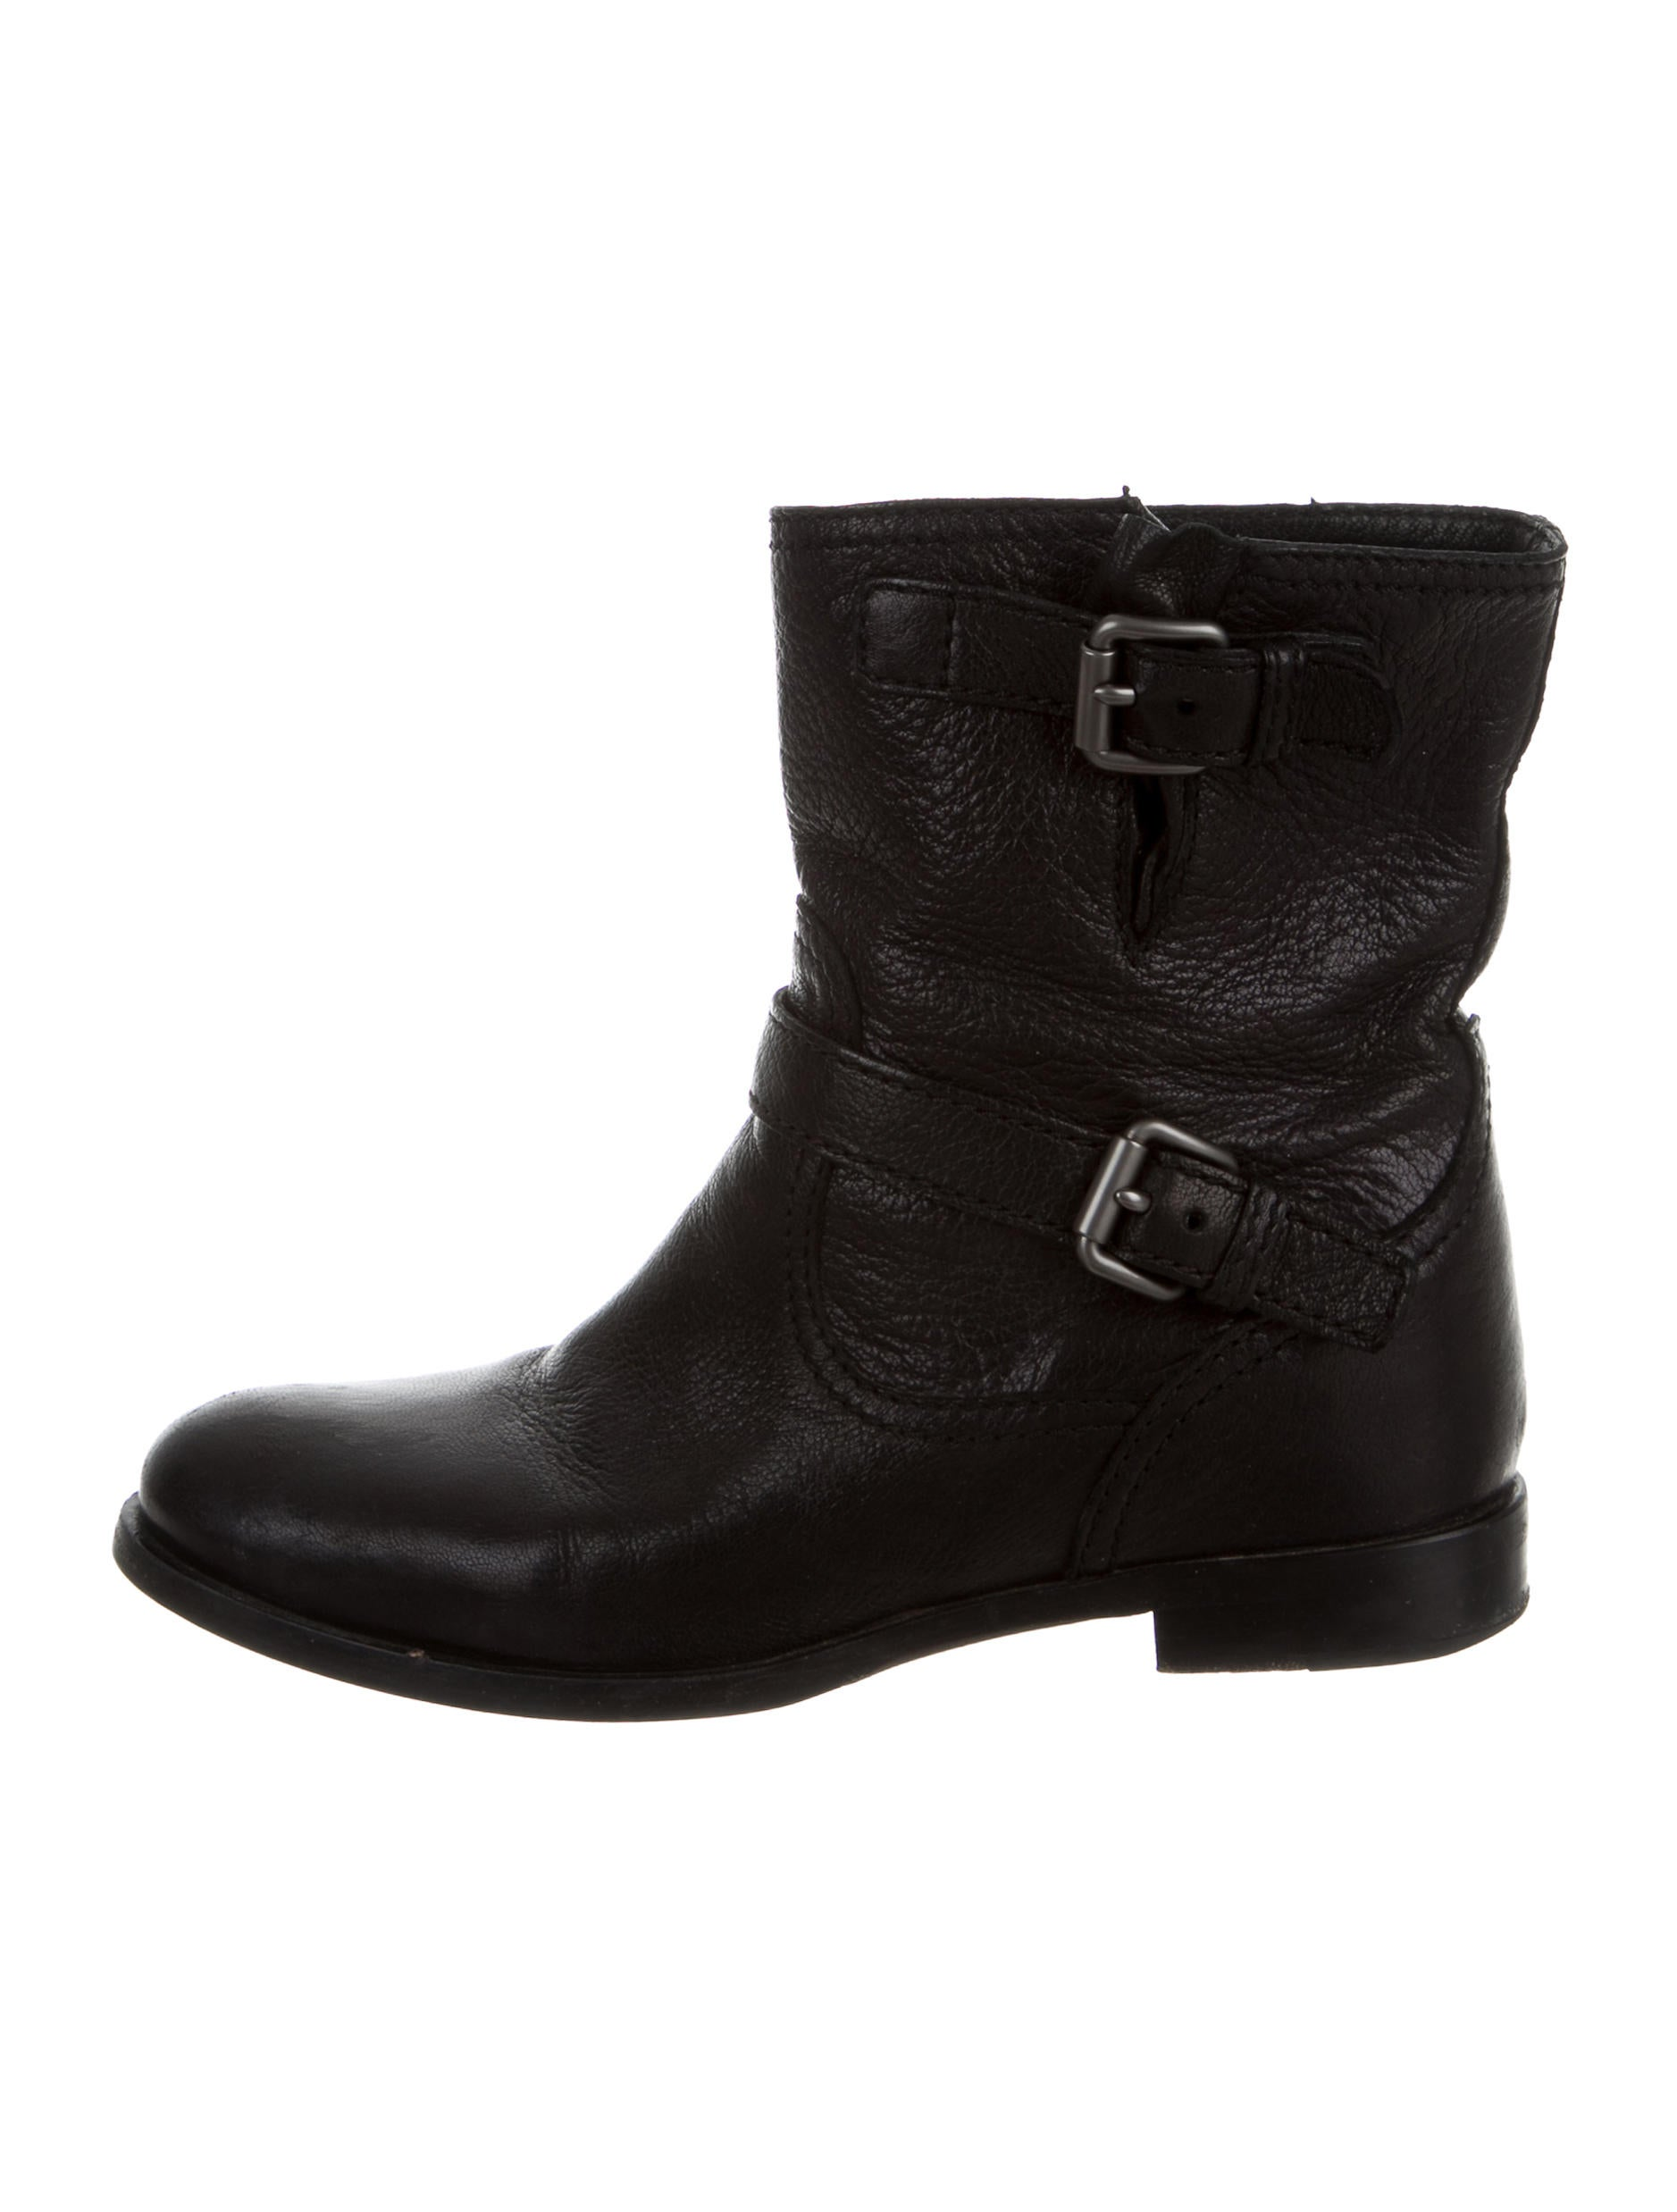 prada leather moto ankle boots shoes pra136264 the